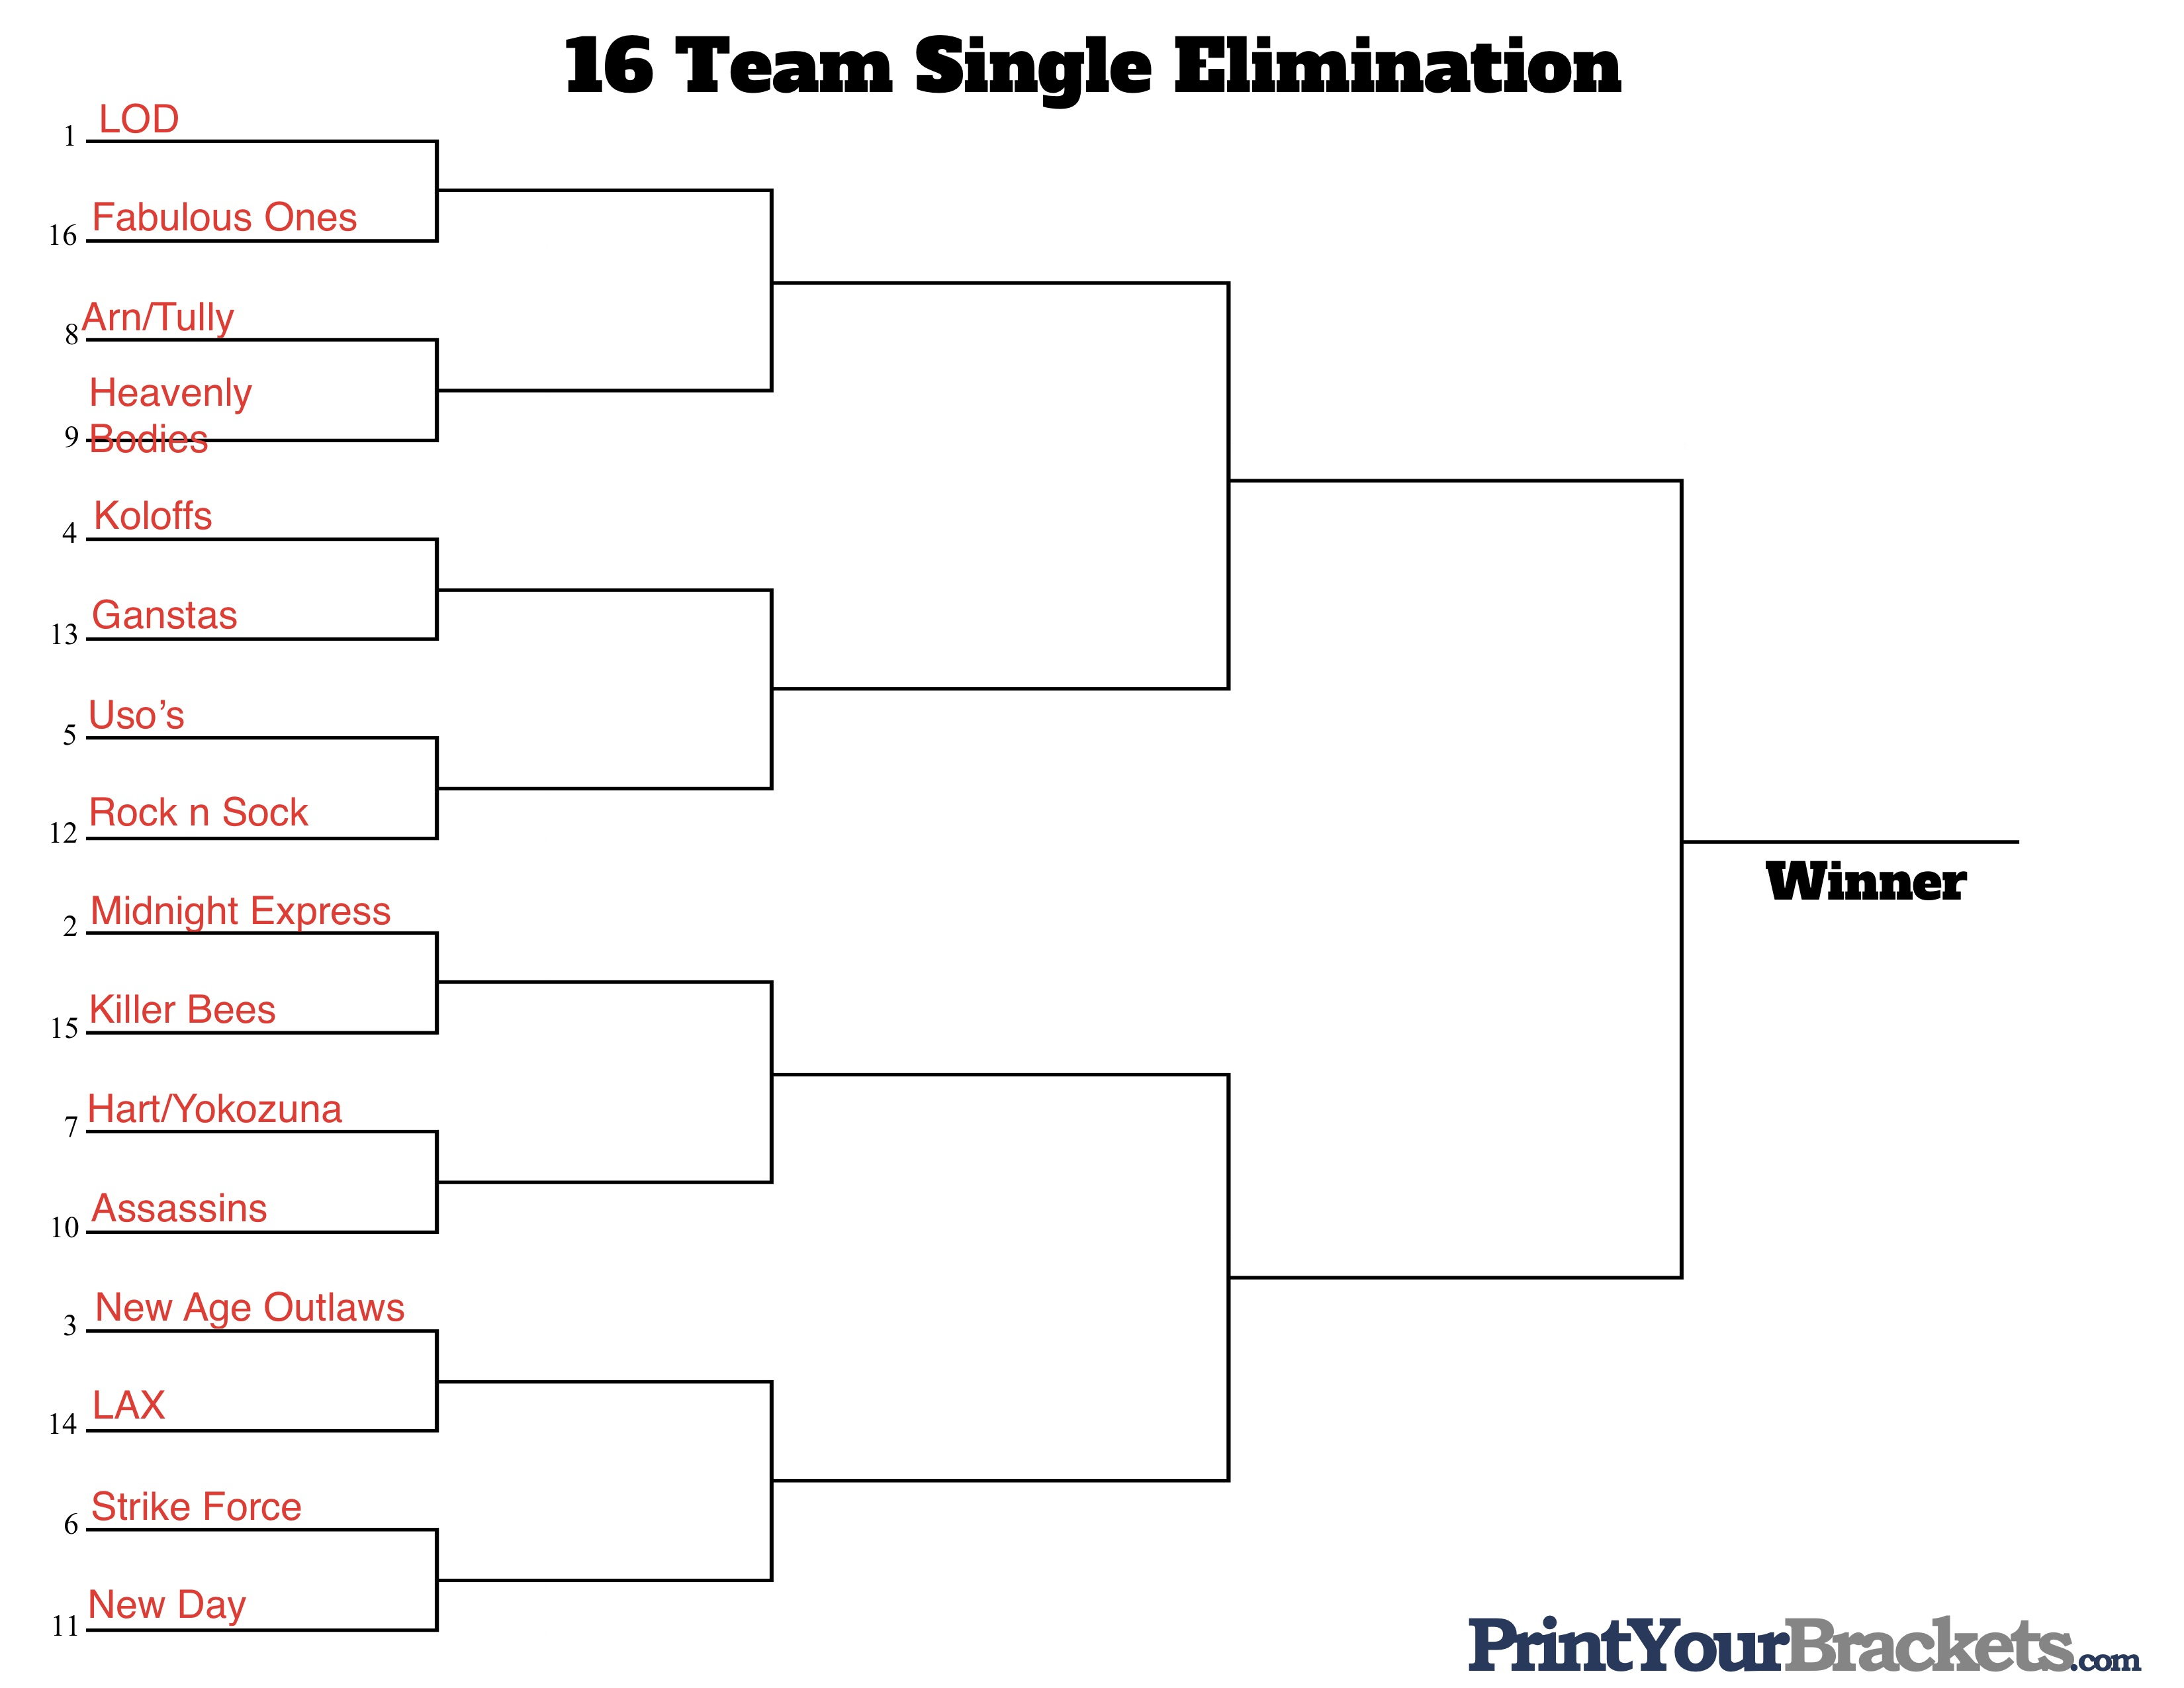 249: The 2nd Annual Death Dealers Invitational Fantasy Tag